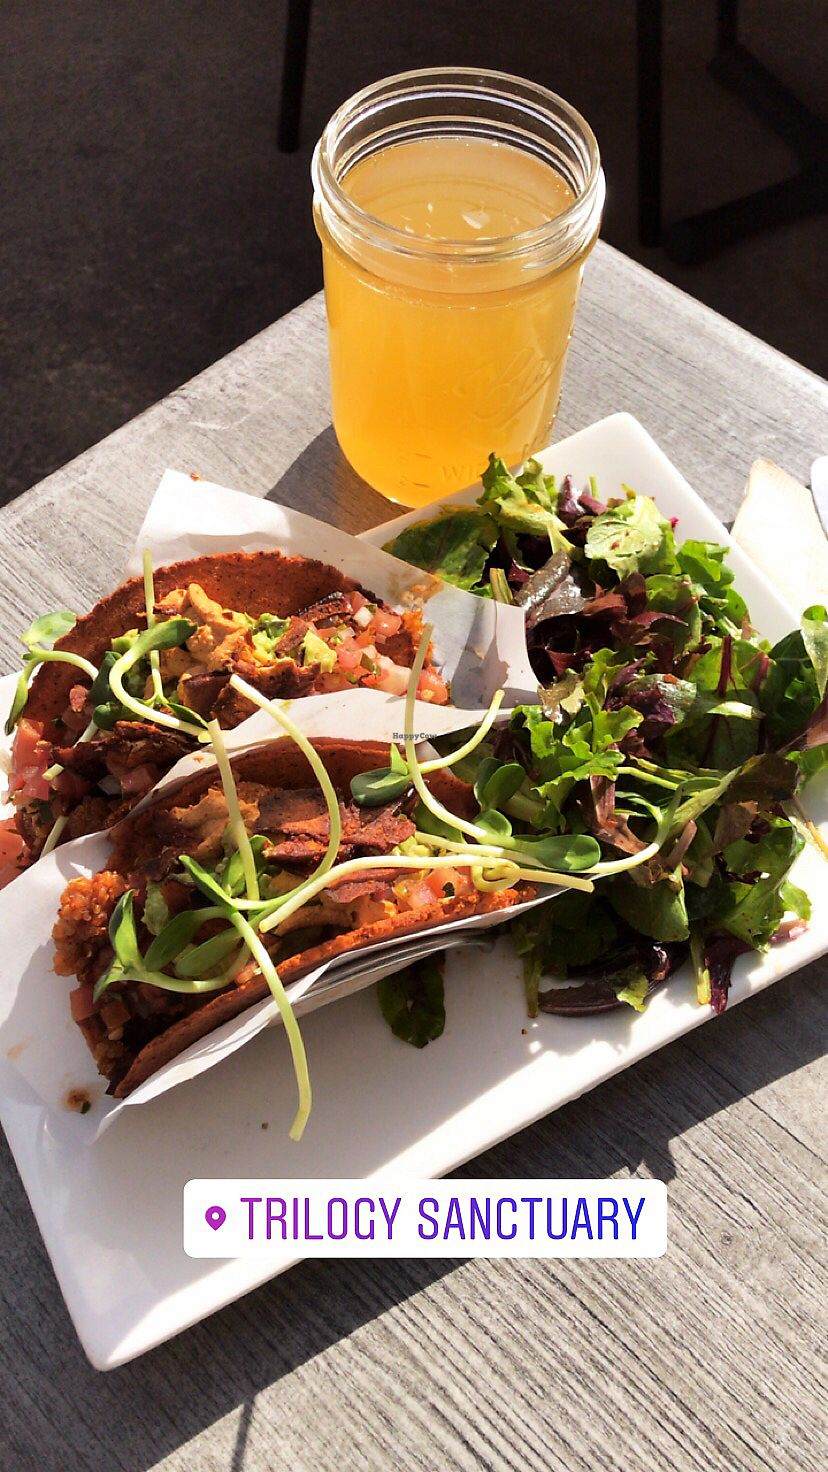 """Photo of Trilogy Sanctuary  by <a href=""""/members/profile/BrittanyBeck"""">BrittanyBeck</a> <br/>Quinoa tacos!  <br/> December 26, 2017  - <a href='/contact/abuse/image/50264/339128'>Report</a>"""